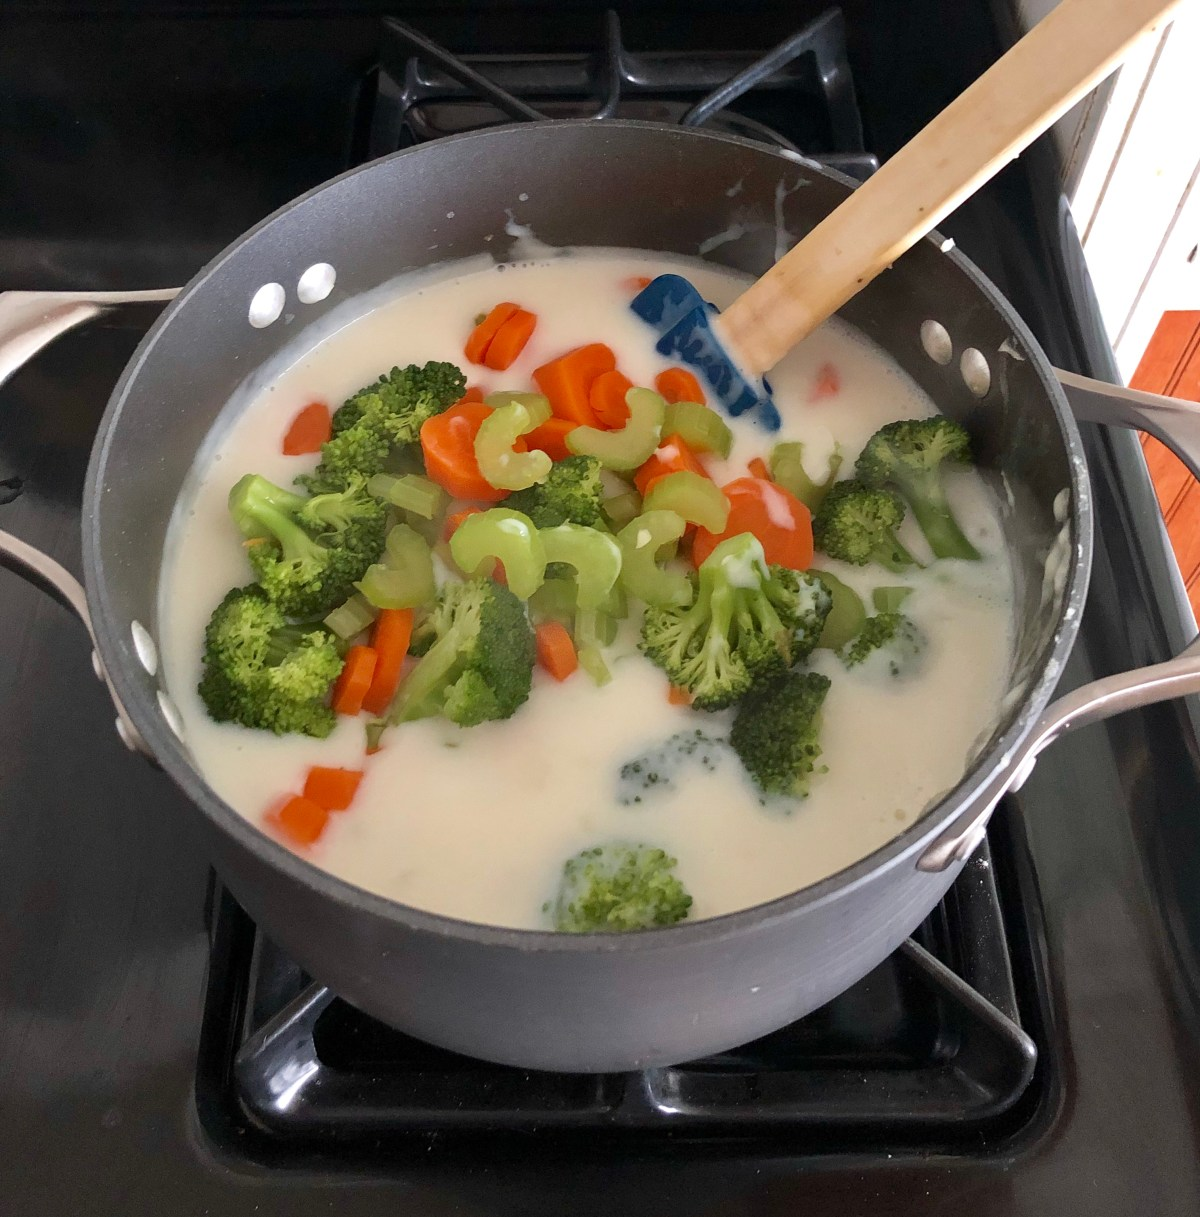 Broccoli, carrots, and celery are added back to the soup pot.